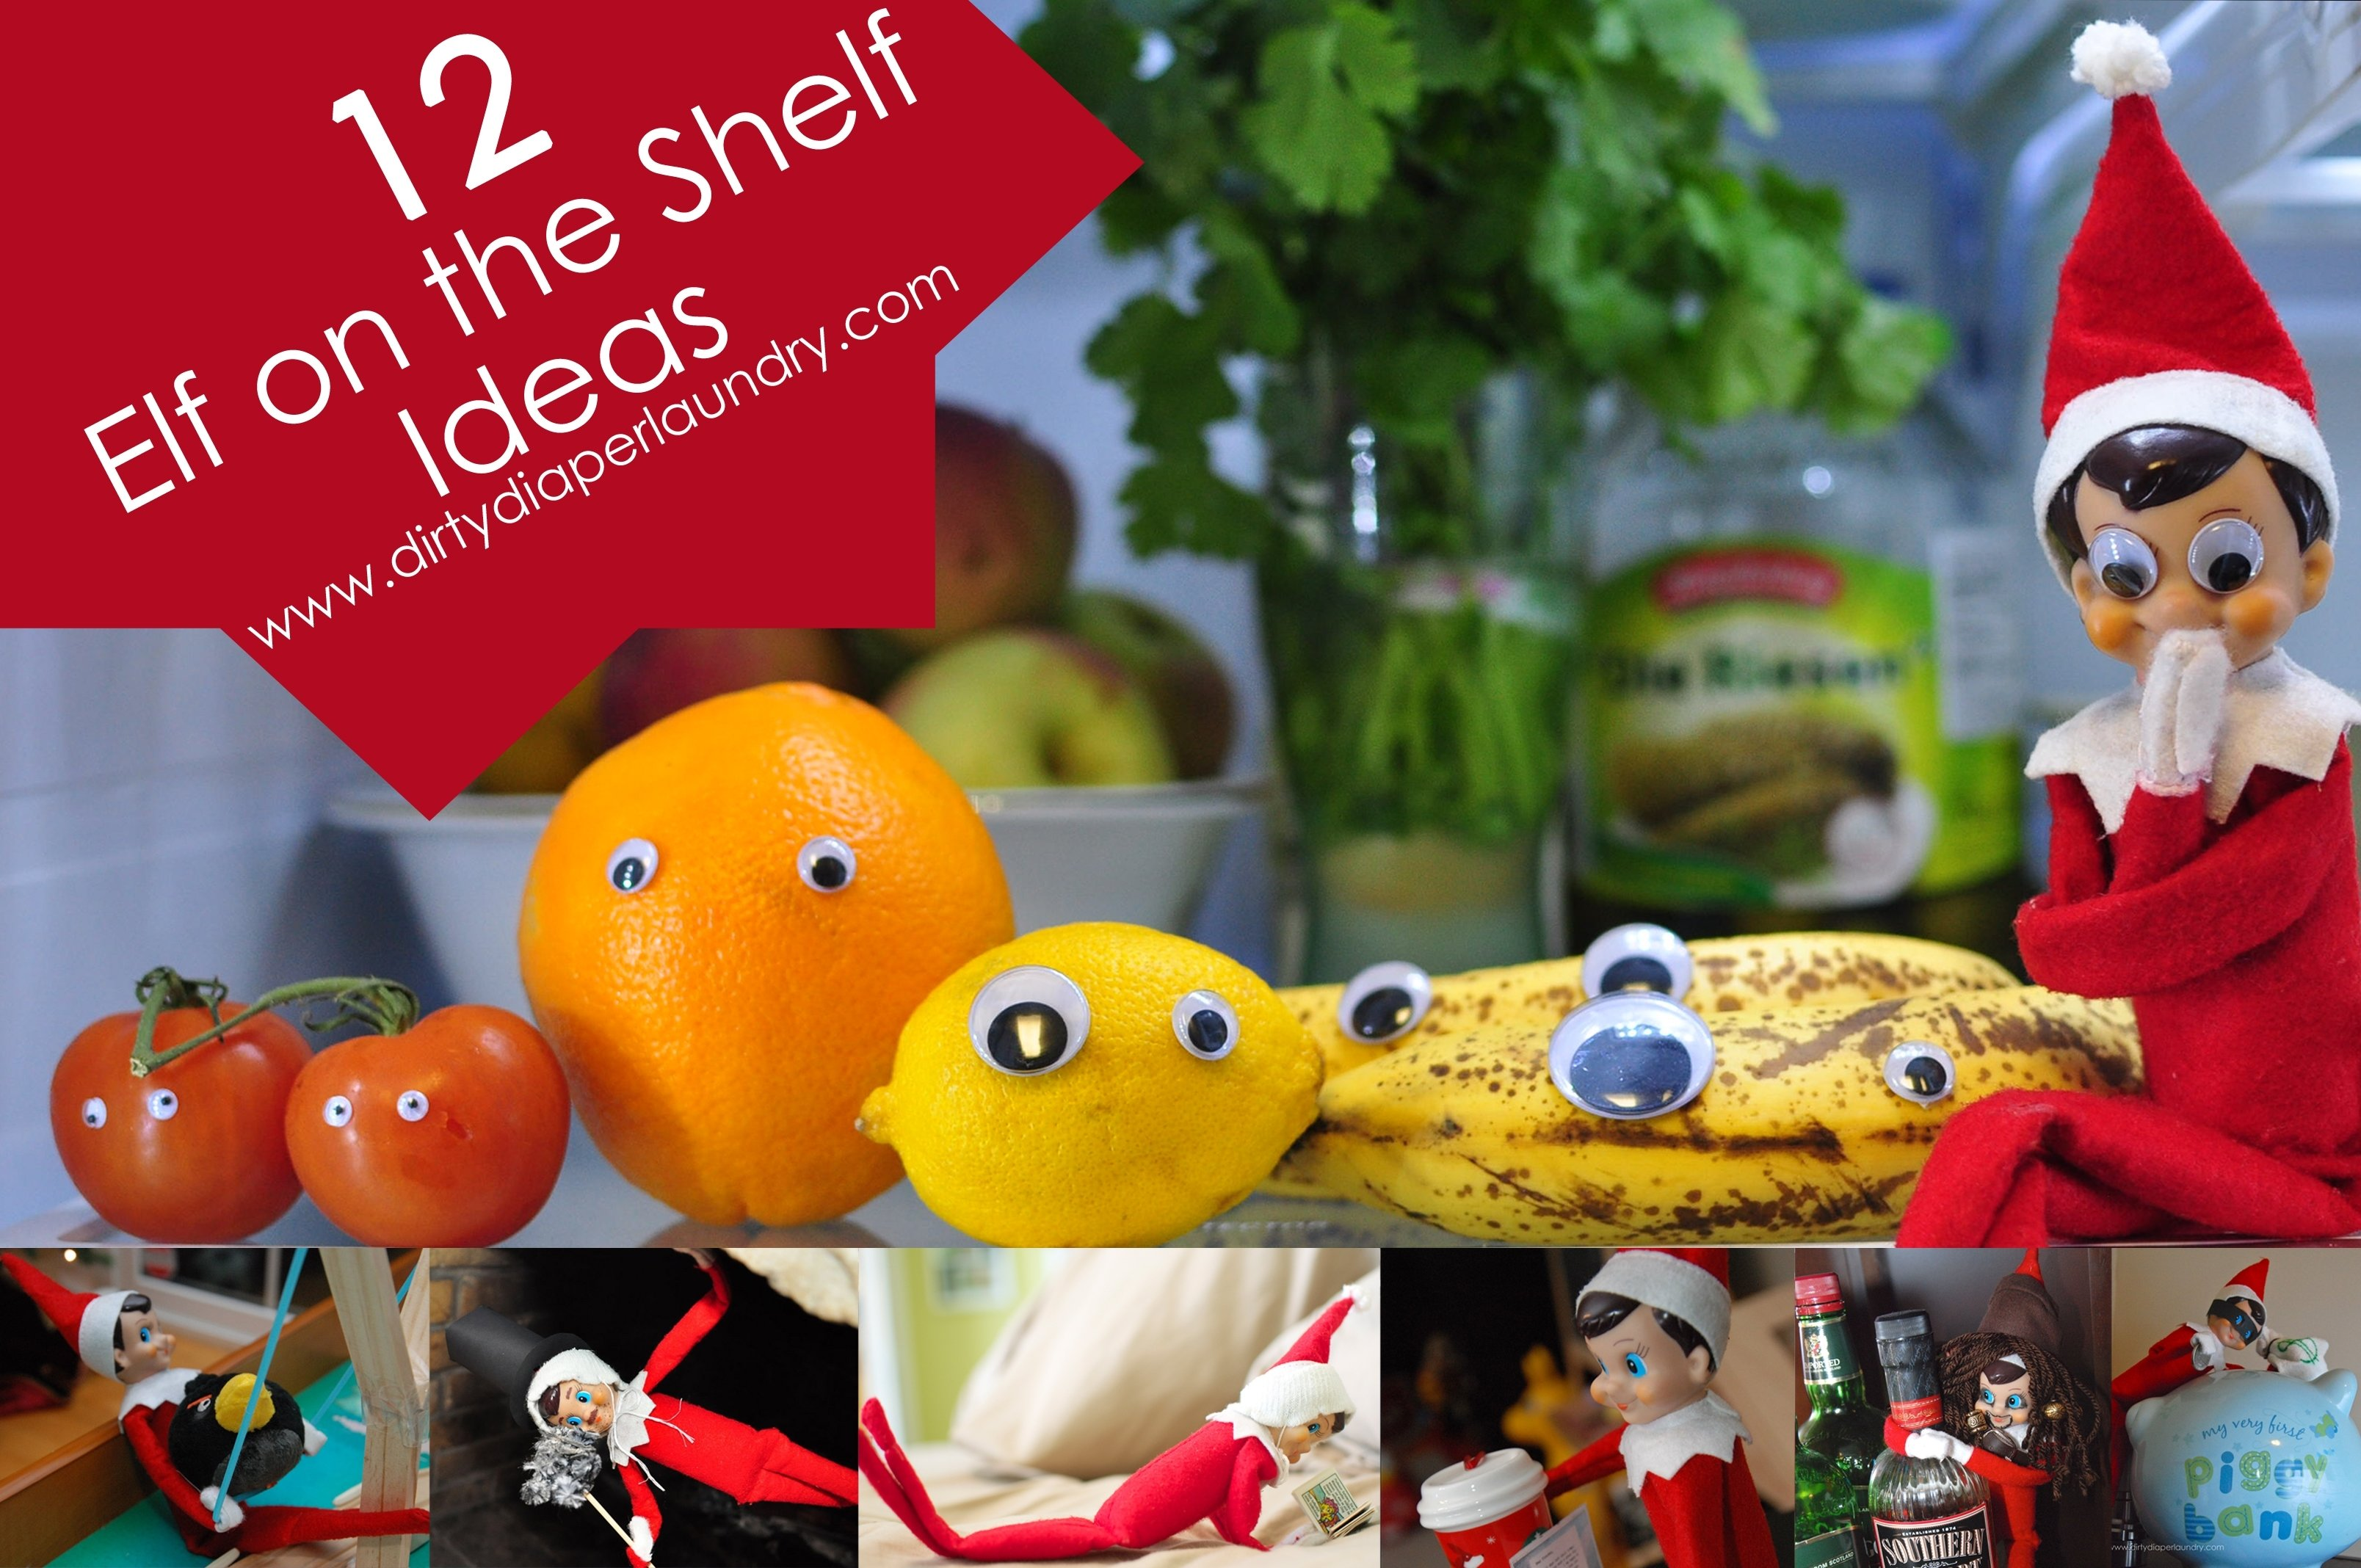 10 Stylish Dirty Elf On The Shelf Ideas 12 elf on the shelf ideas dirty diaper laundry 2020